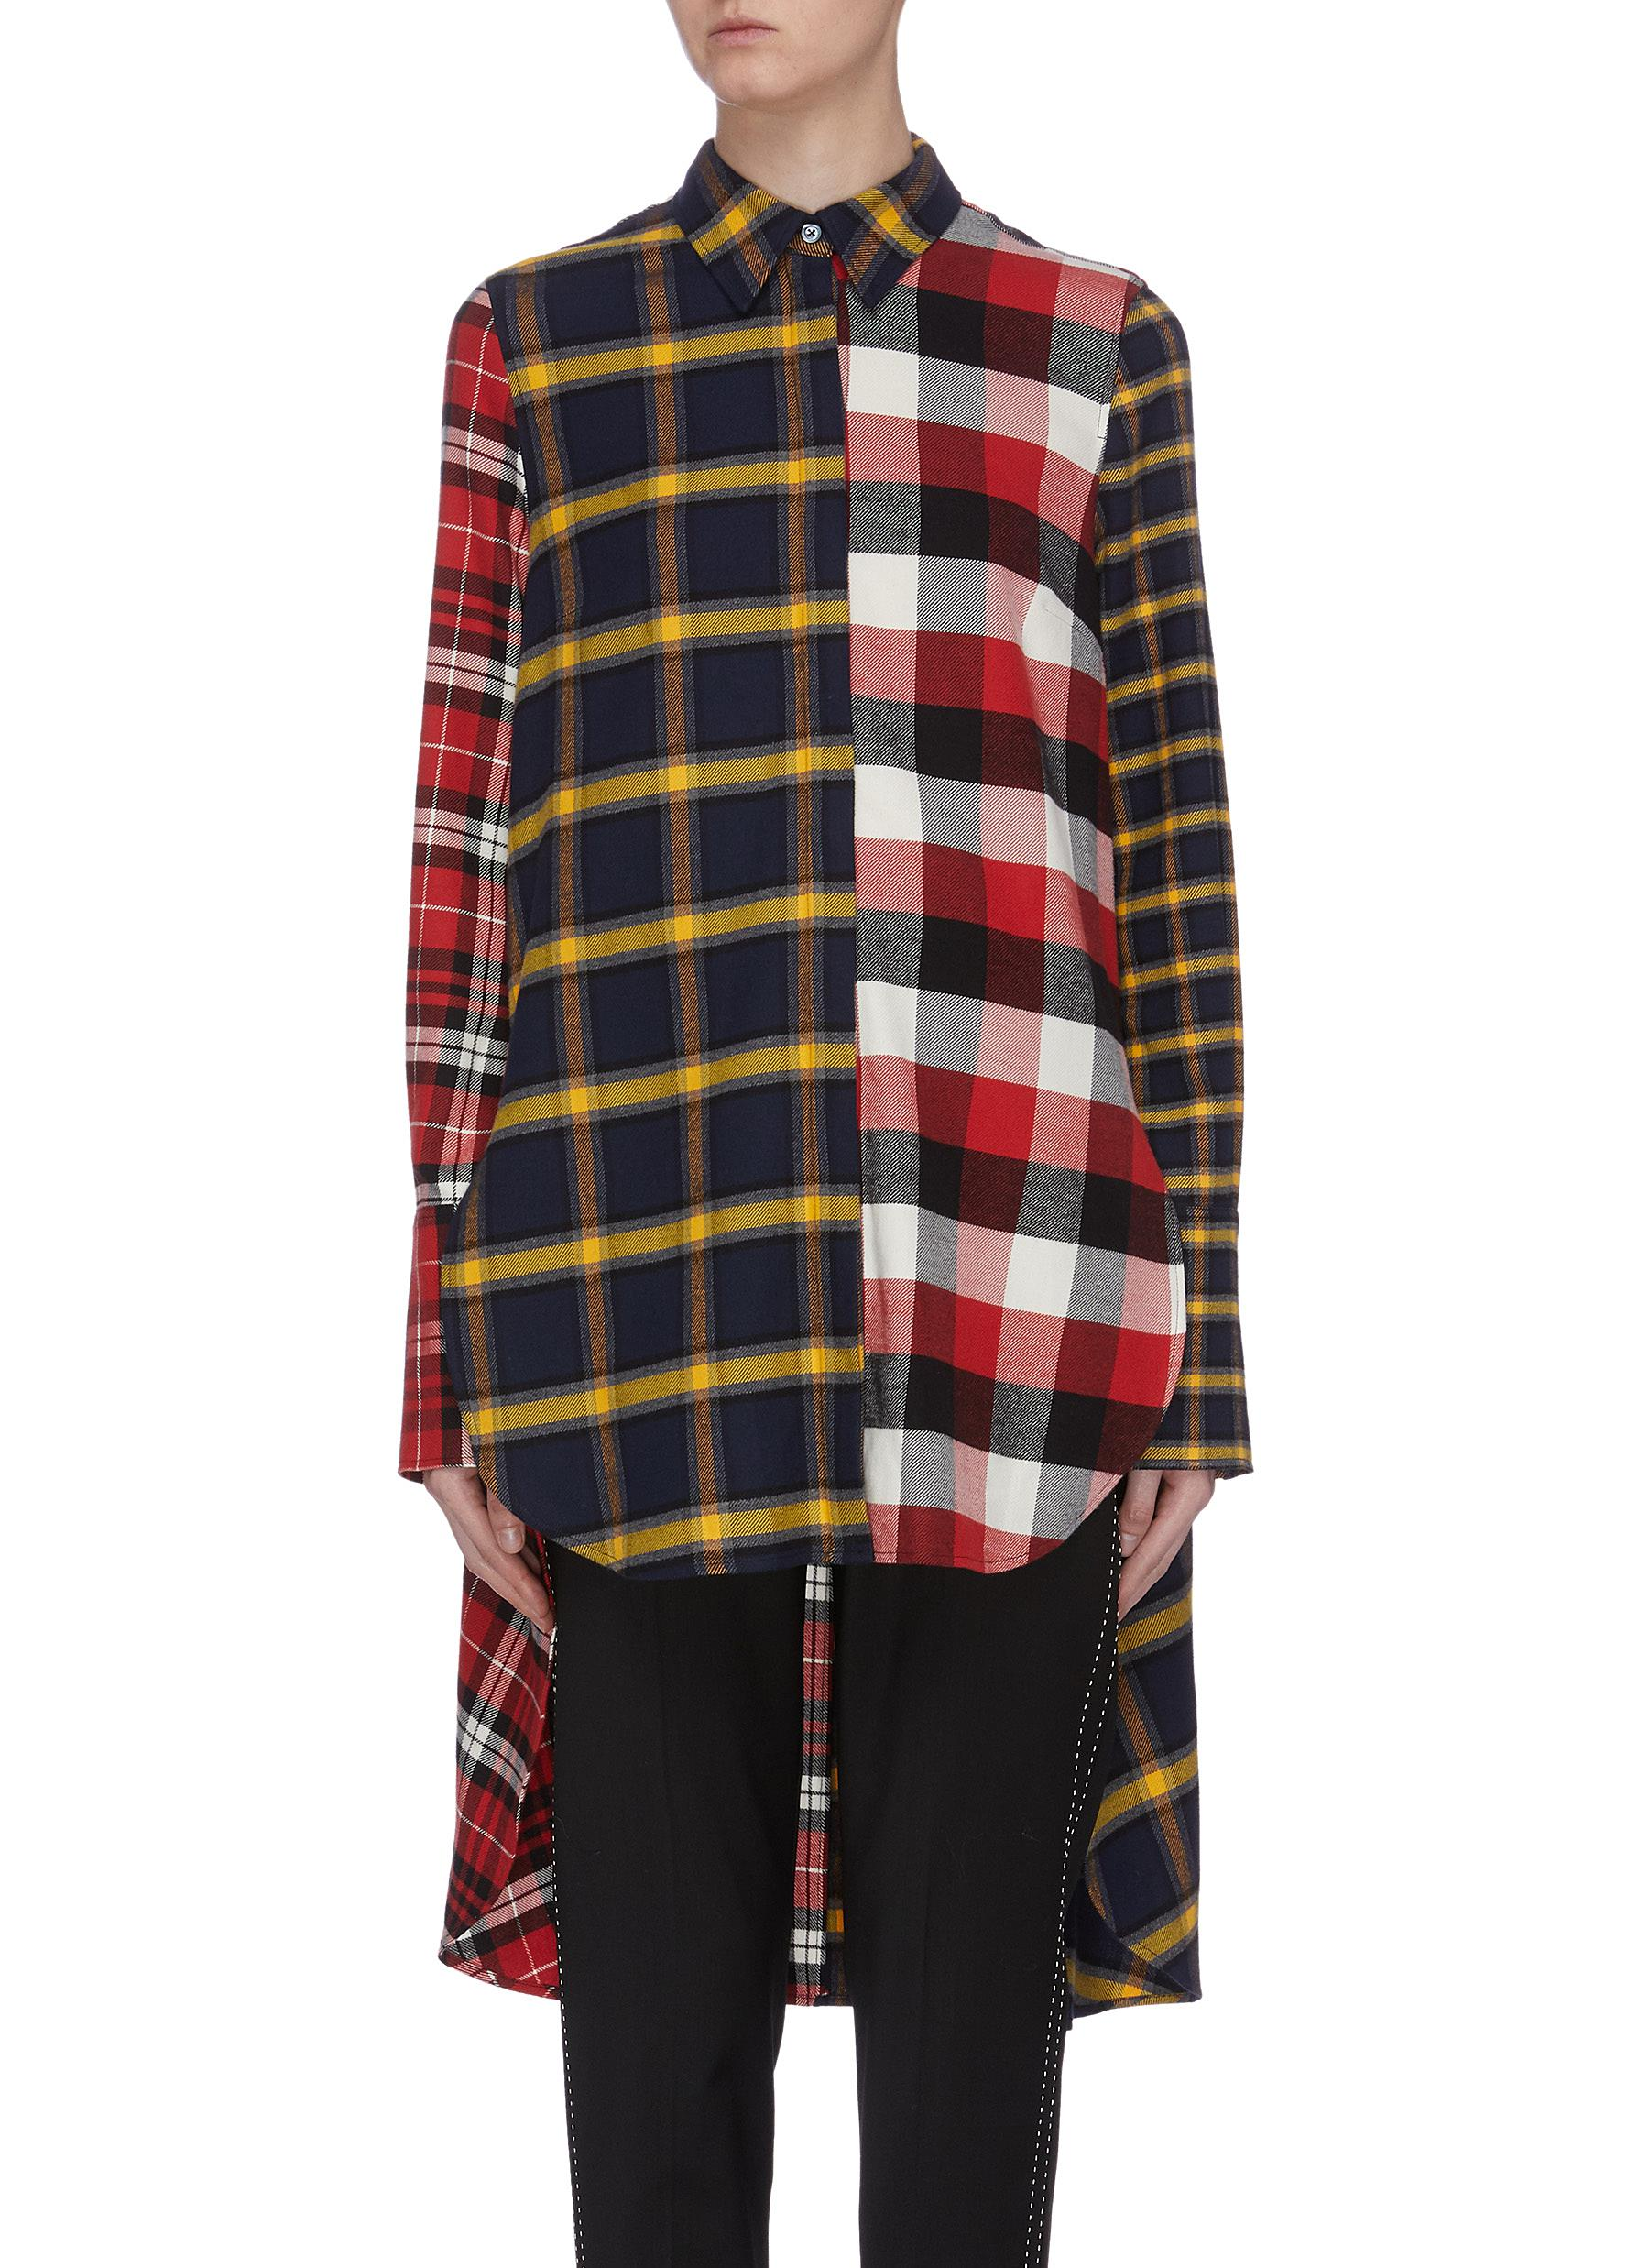 Check plaid patchwork high-low shirt by Monse